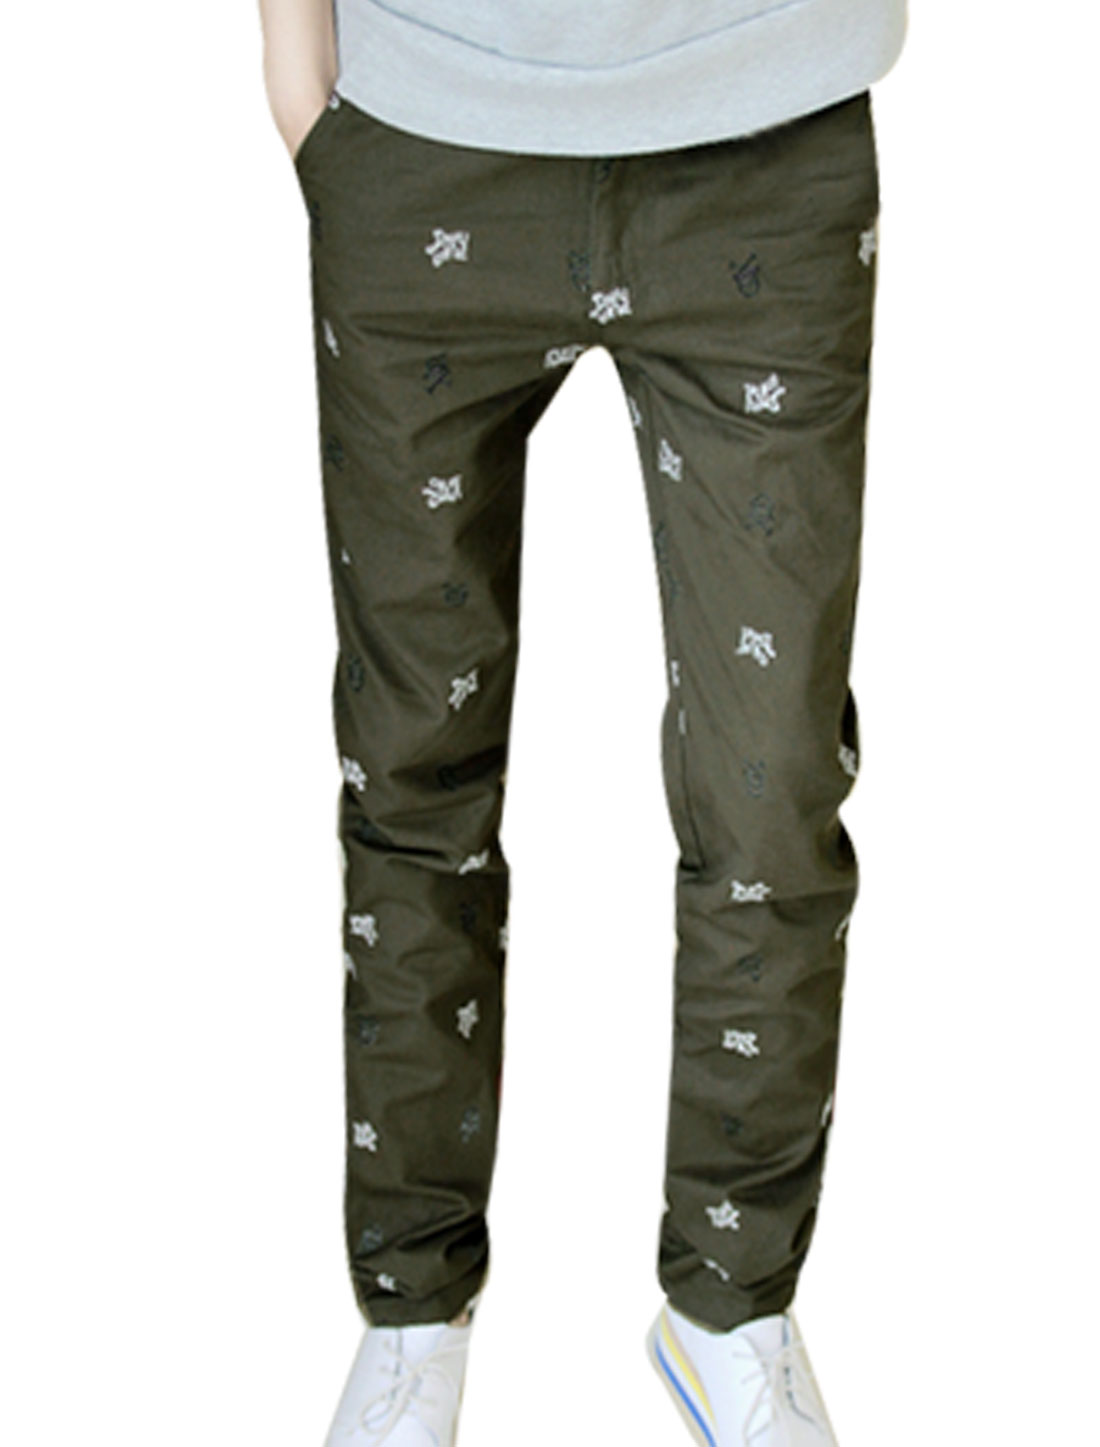 Stylish Mens Crossbone Embroider Straight Casual Pants Trousers Olive Green W30